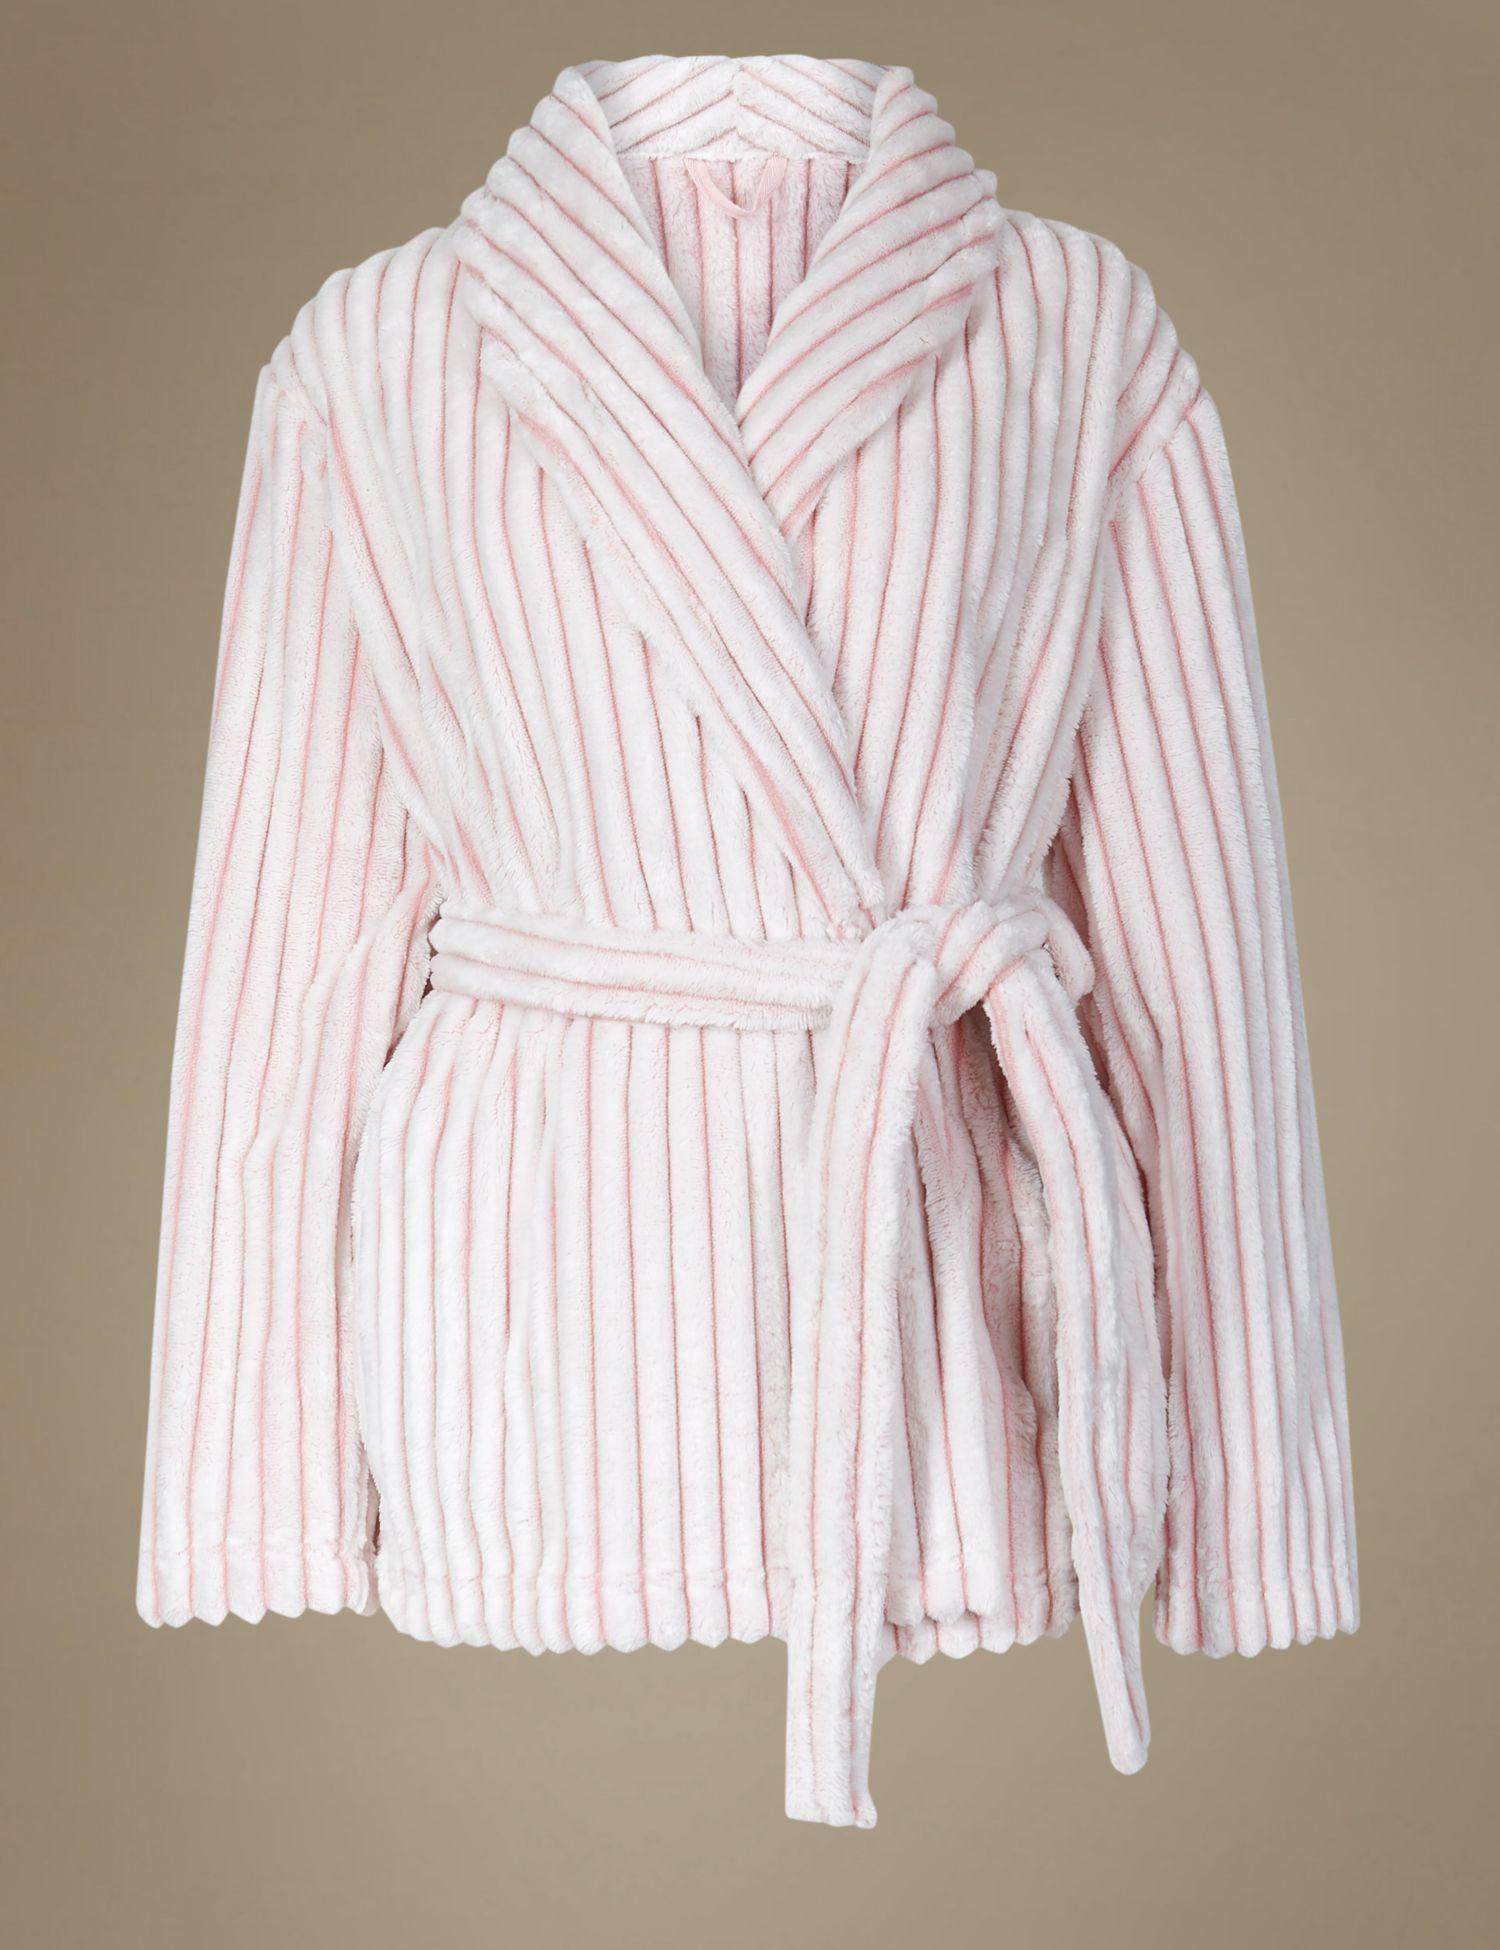 Marks & Spencer Supersoft Textured Short Dressing Gown in Pink - Lyst